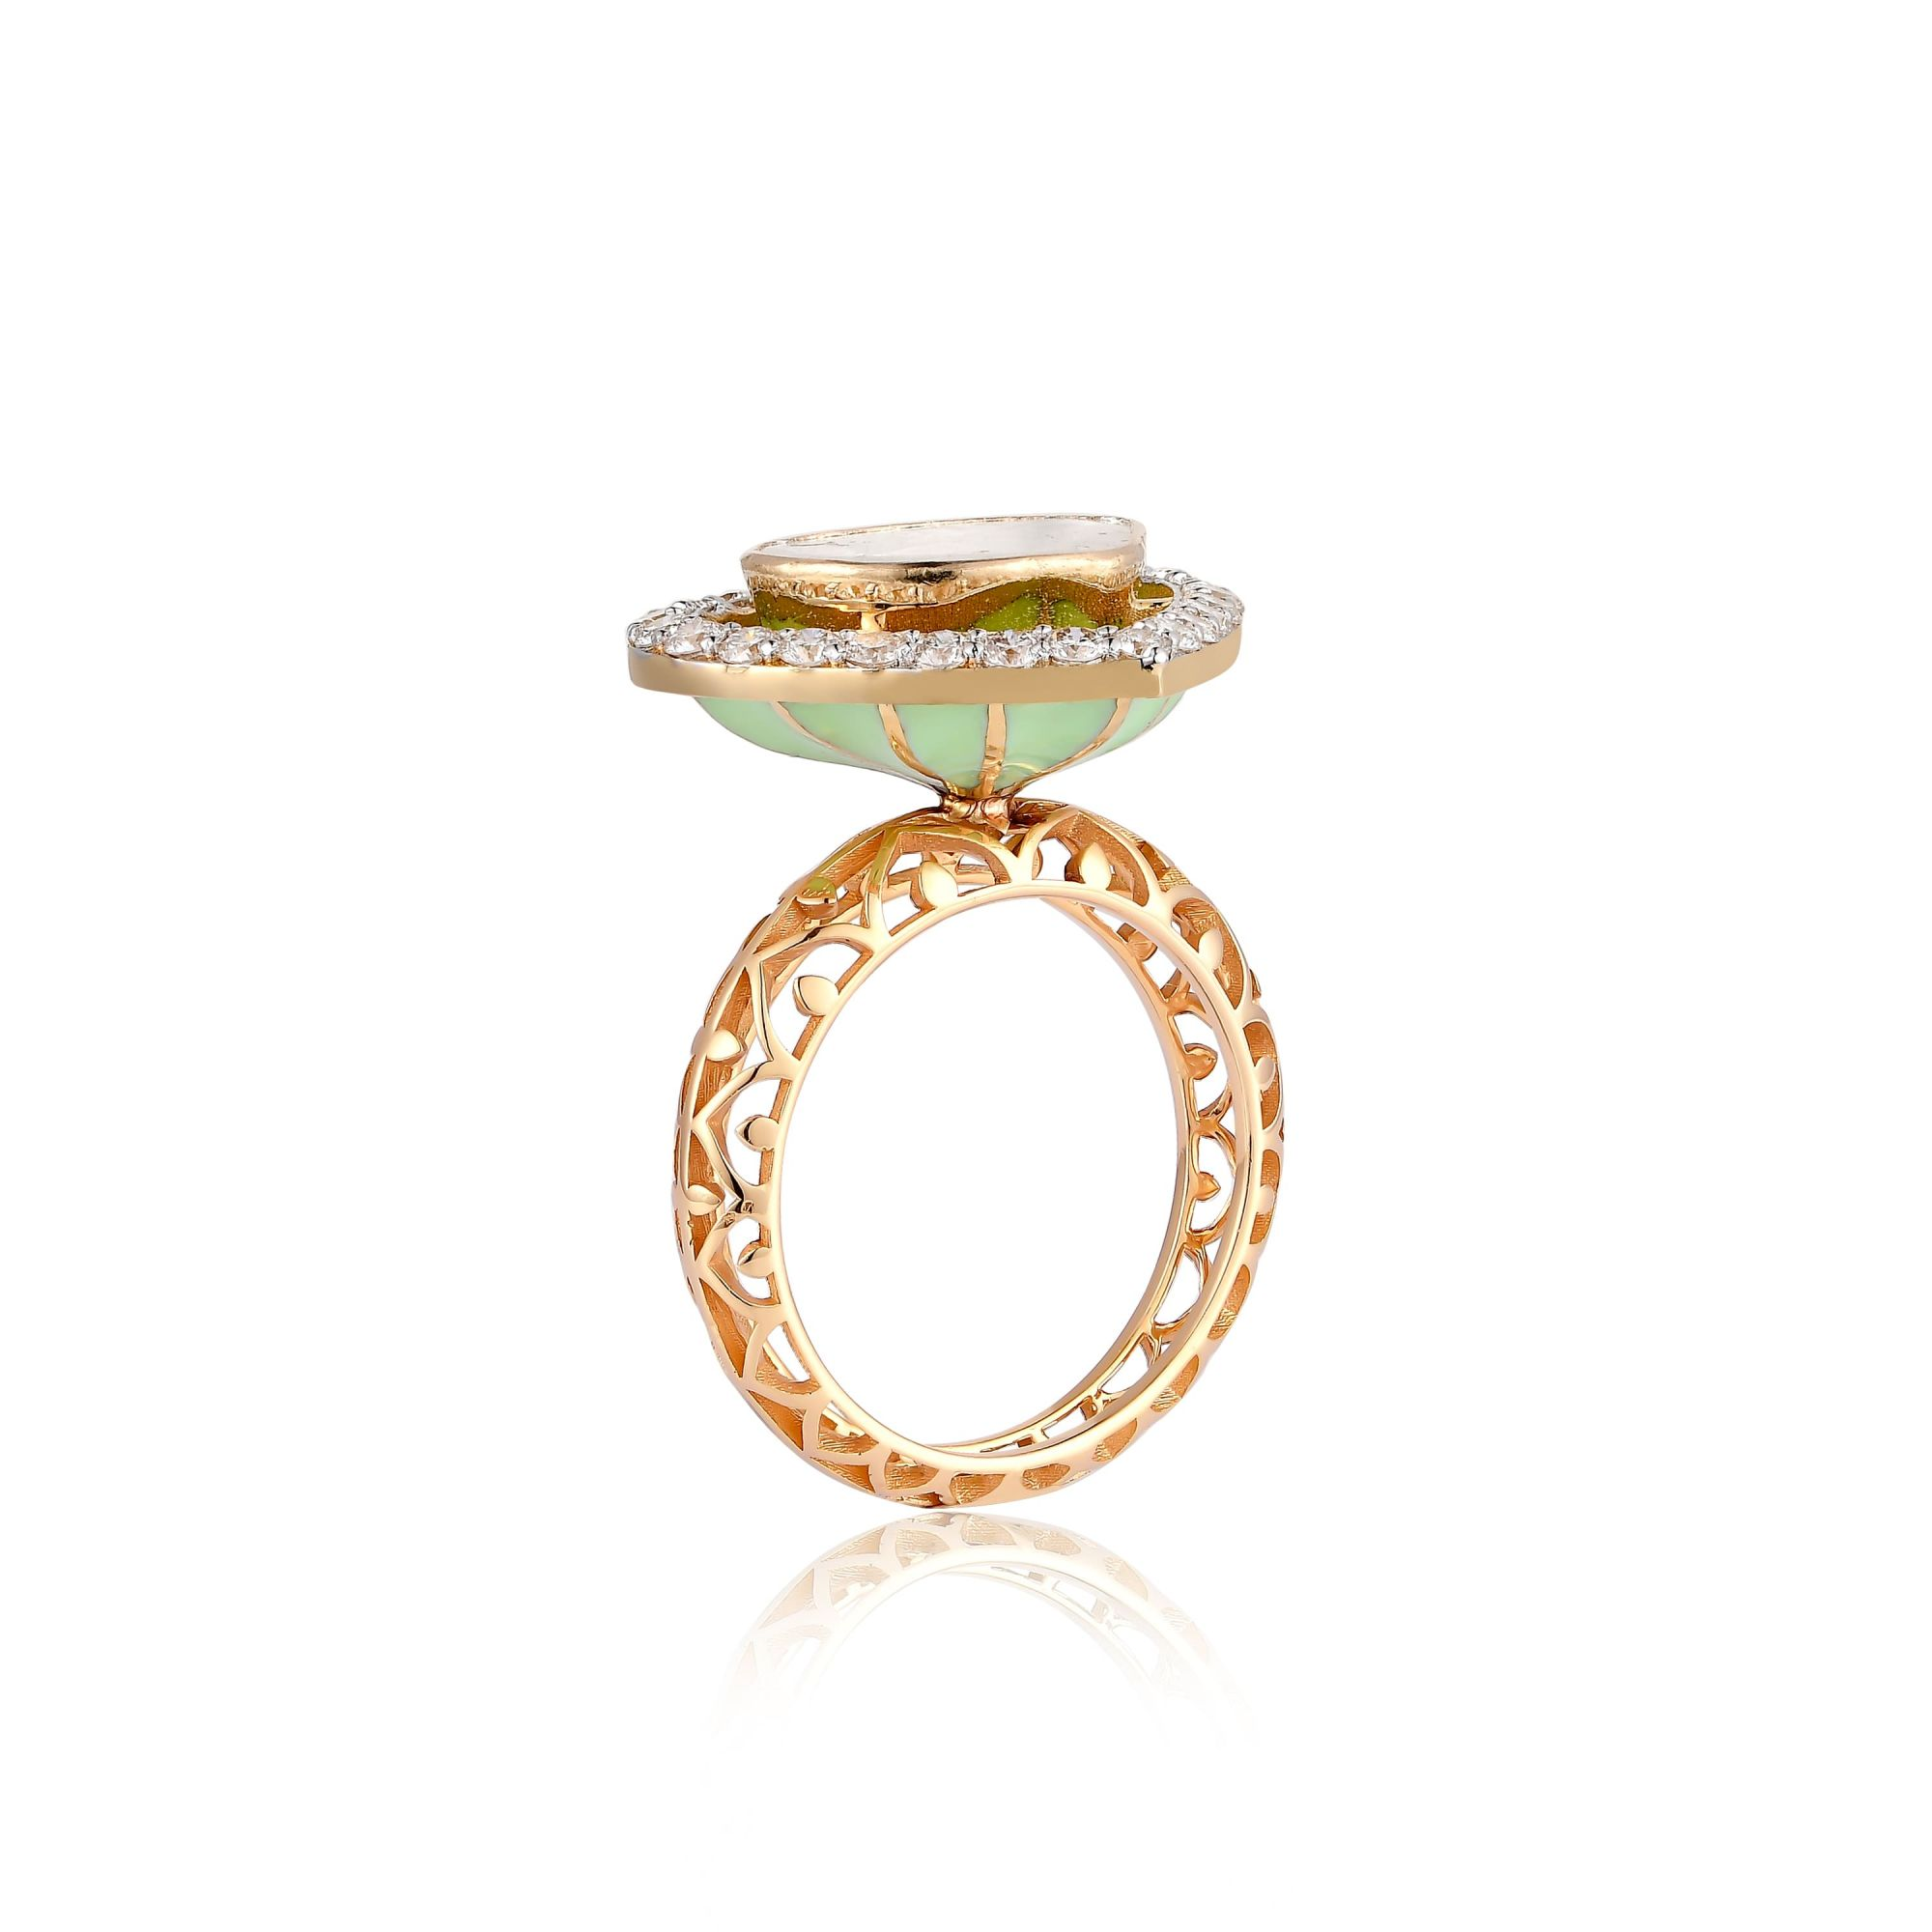 INTIMATE HEART RING